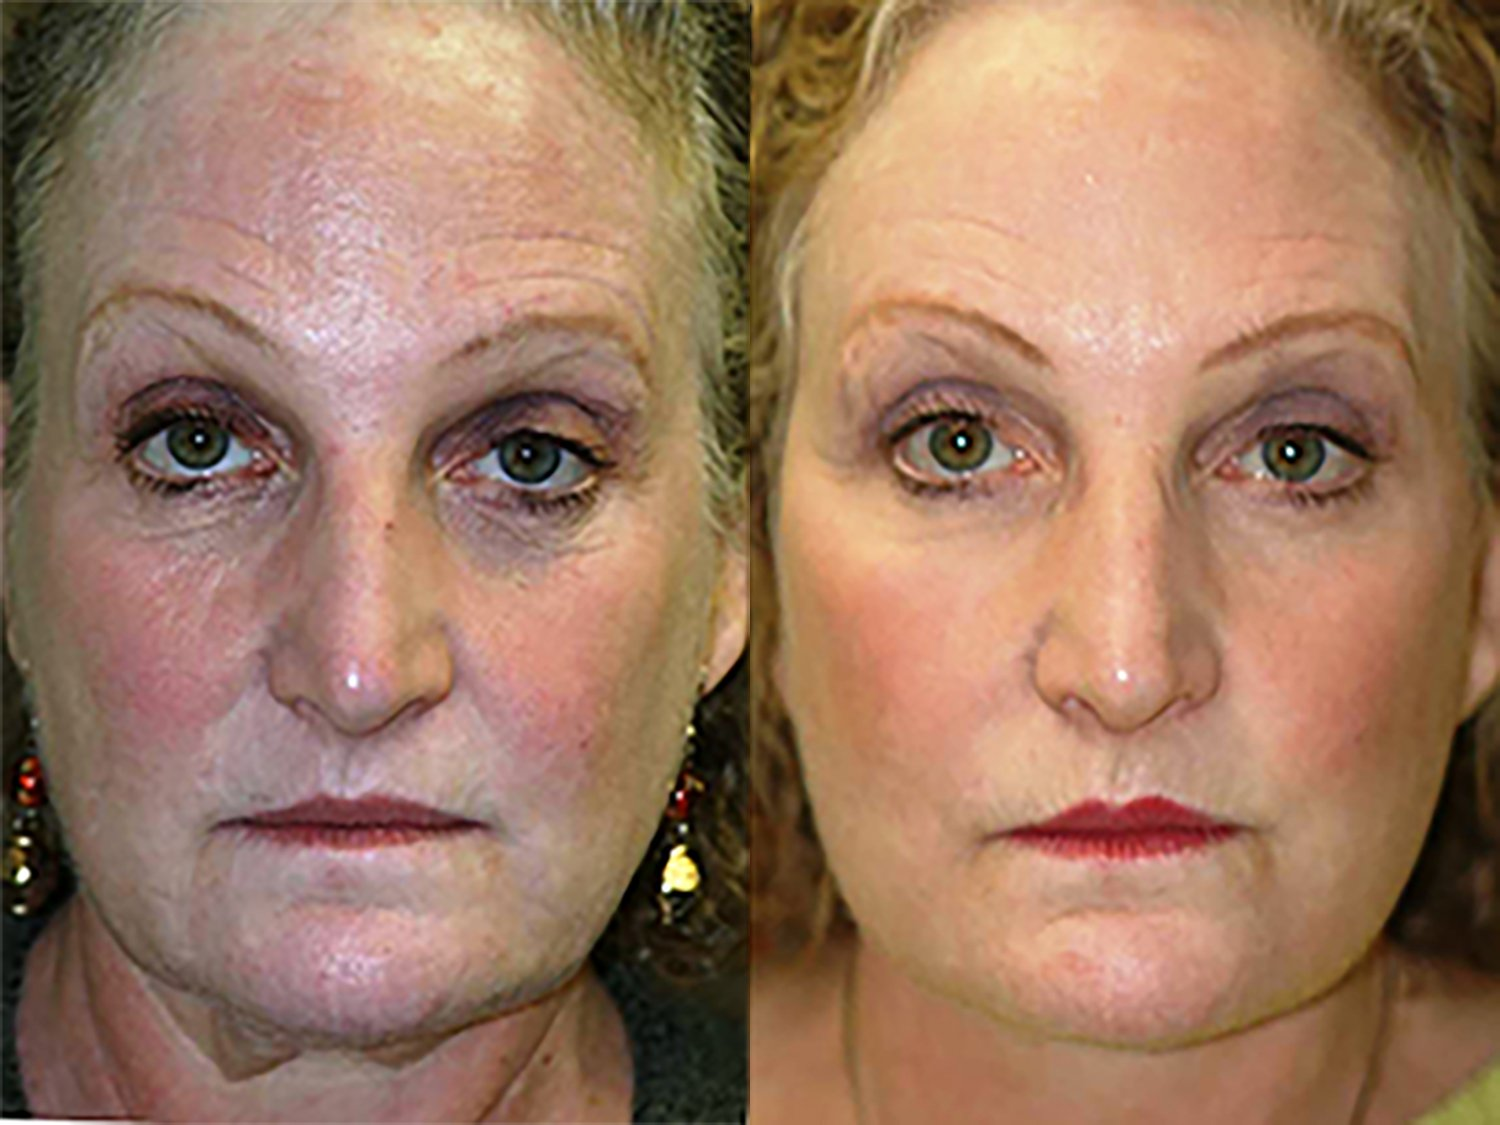 59 year-old face-lift, submental plication of platysma muscles, endoscopic browlift, laser lower eyelids and lateral canthoplasty